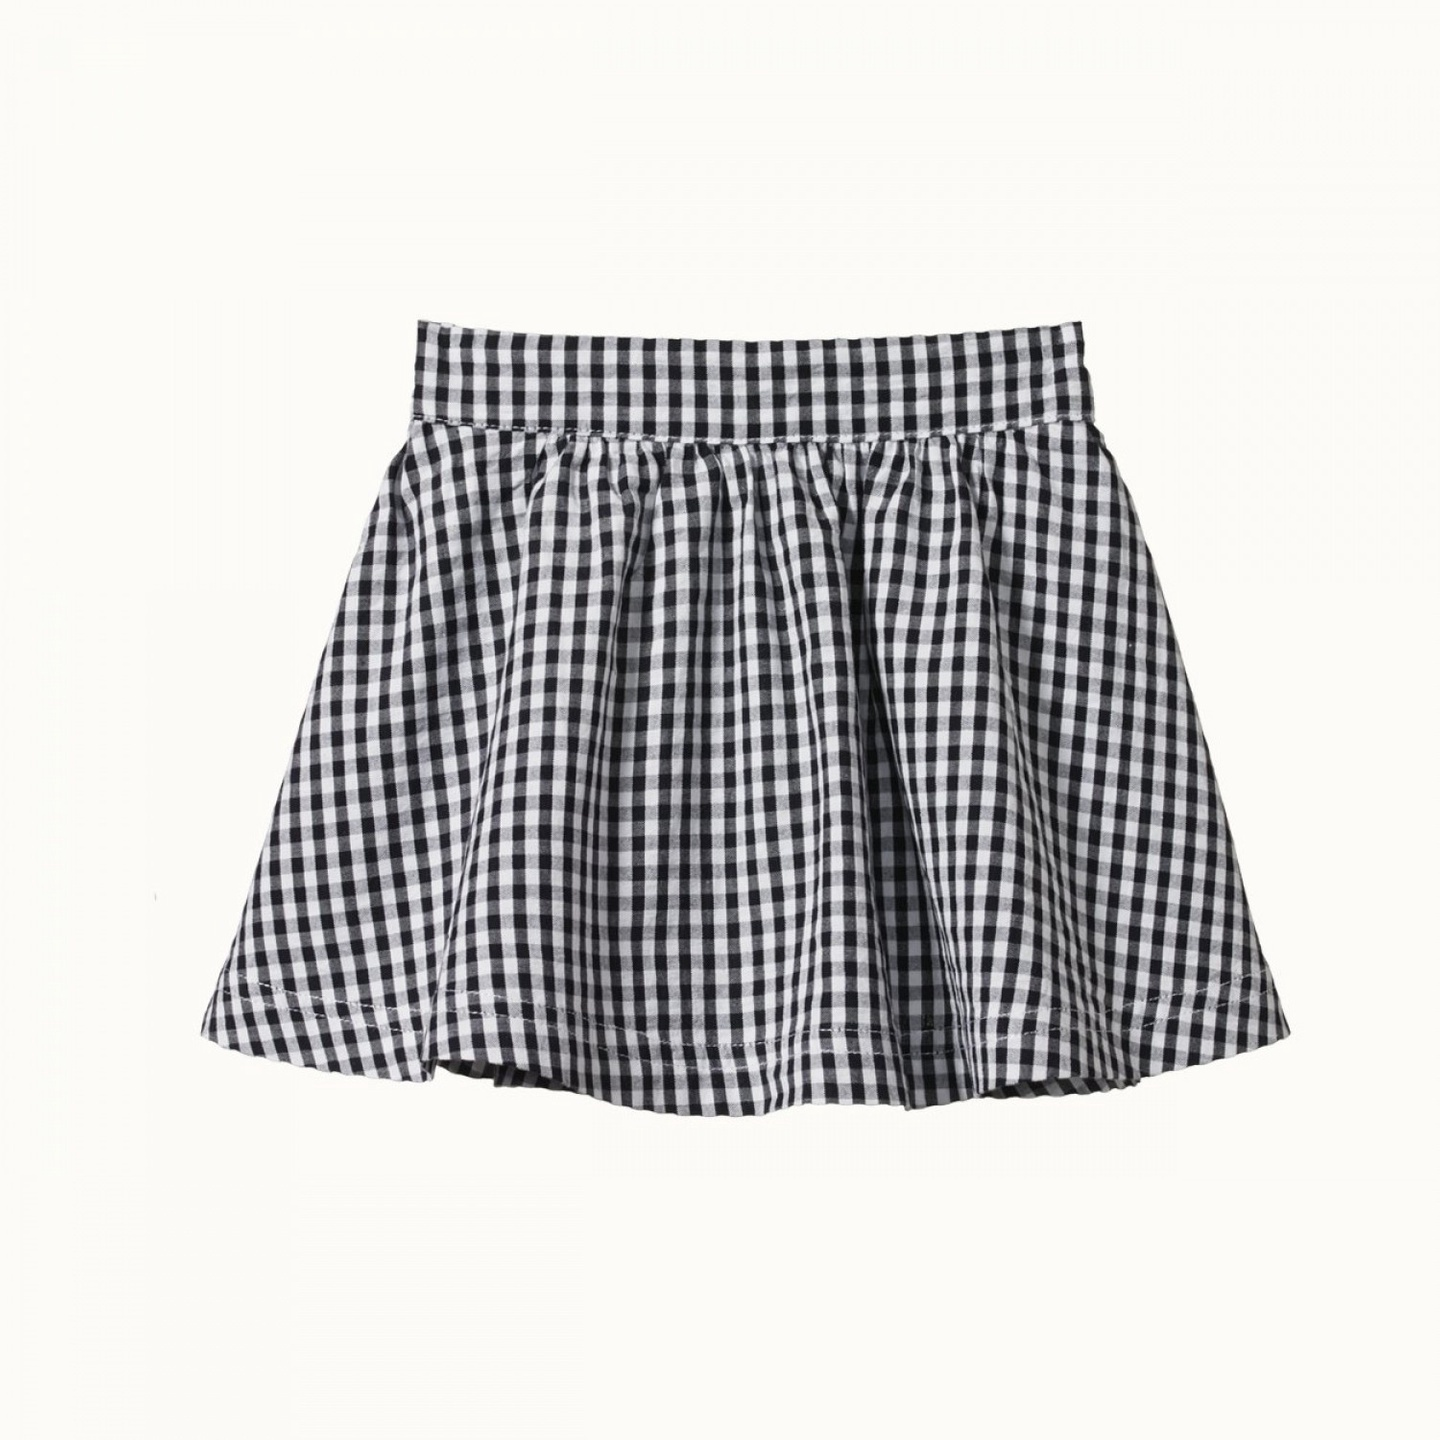 MILLIE SKIRT - NAVY CHECK